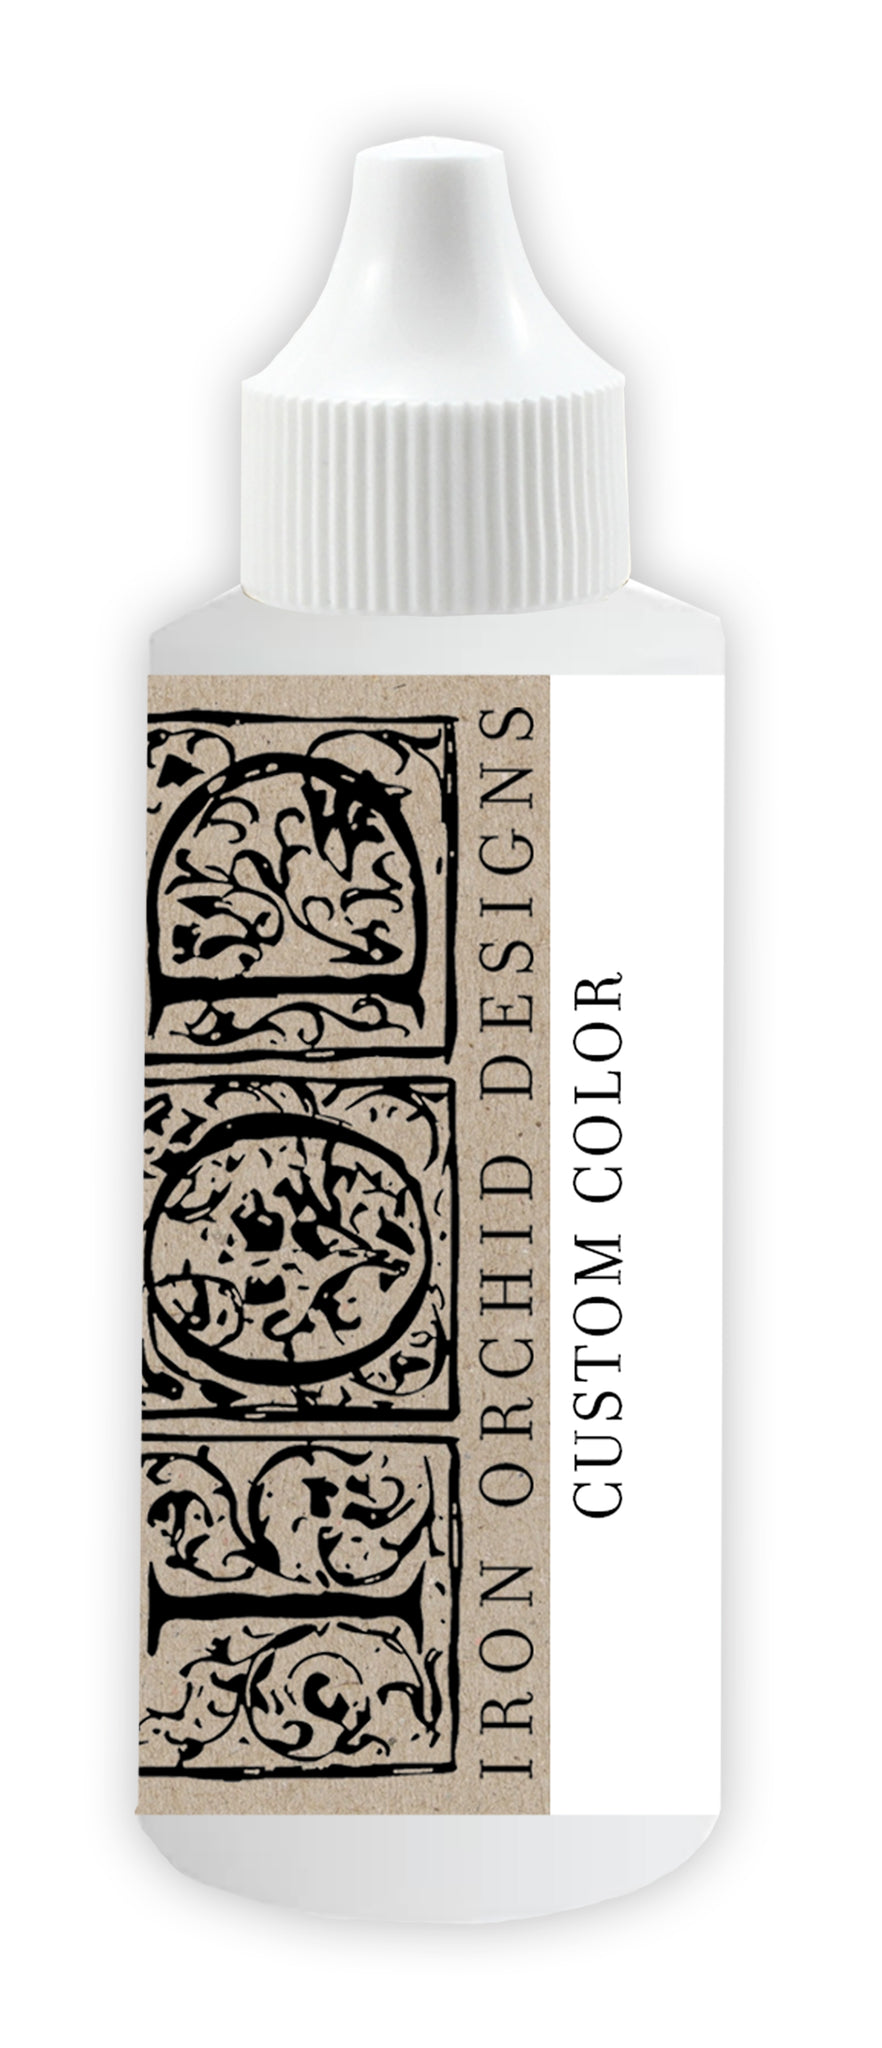 Refillable Décor Ink Bottle 2 oz.